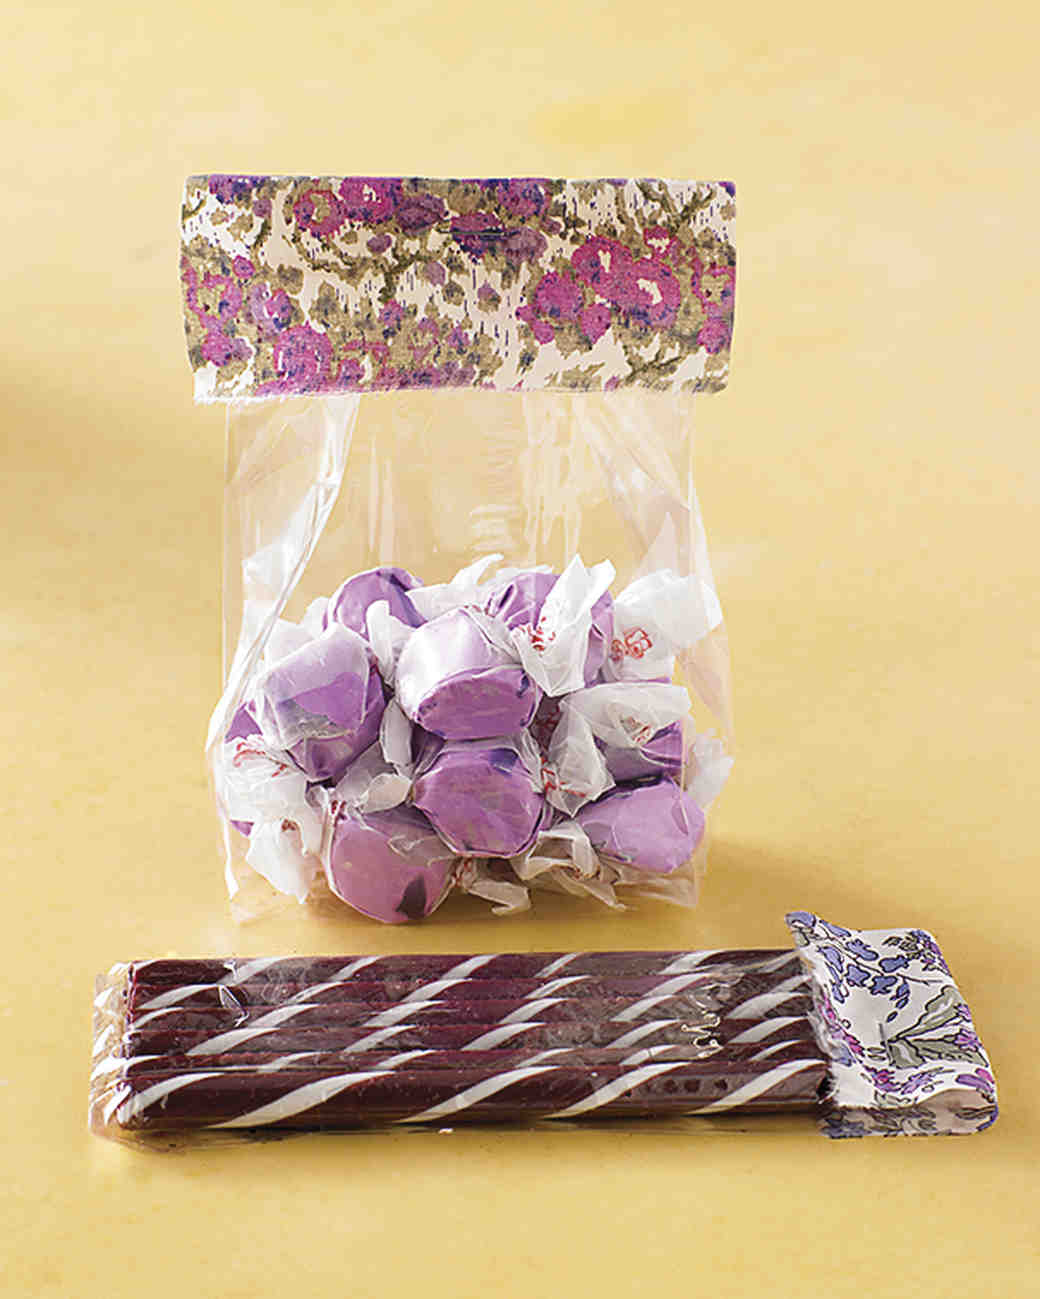 Do it yourself bridal shower favors picture ideas references do it yourself bridal shower favors wedding shower favors ideas homemade free cv templates download uk solutioingenieria Choice Image